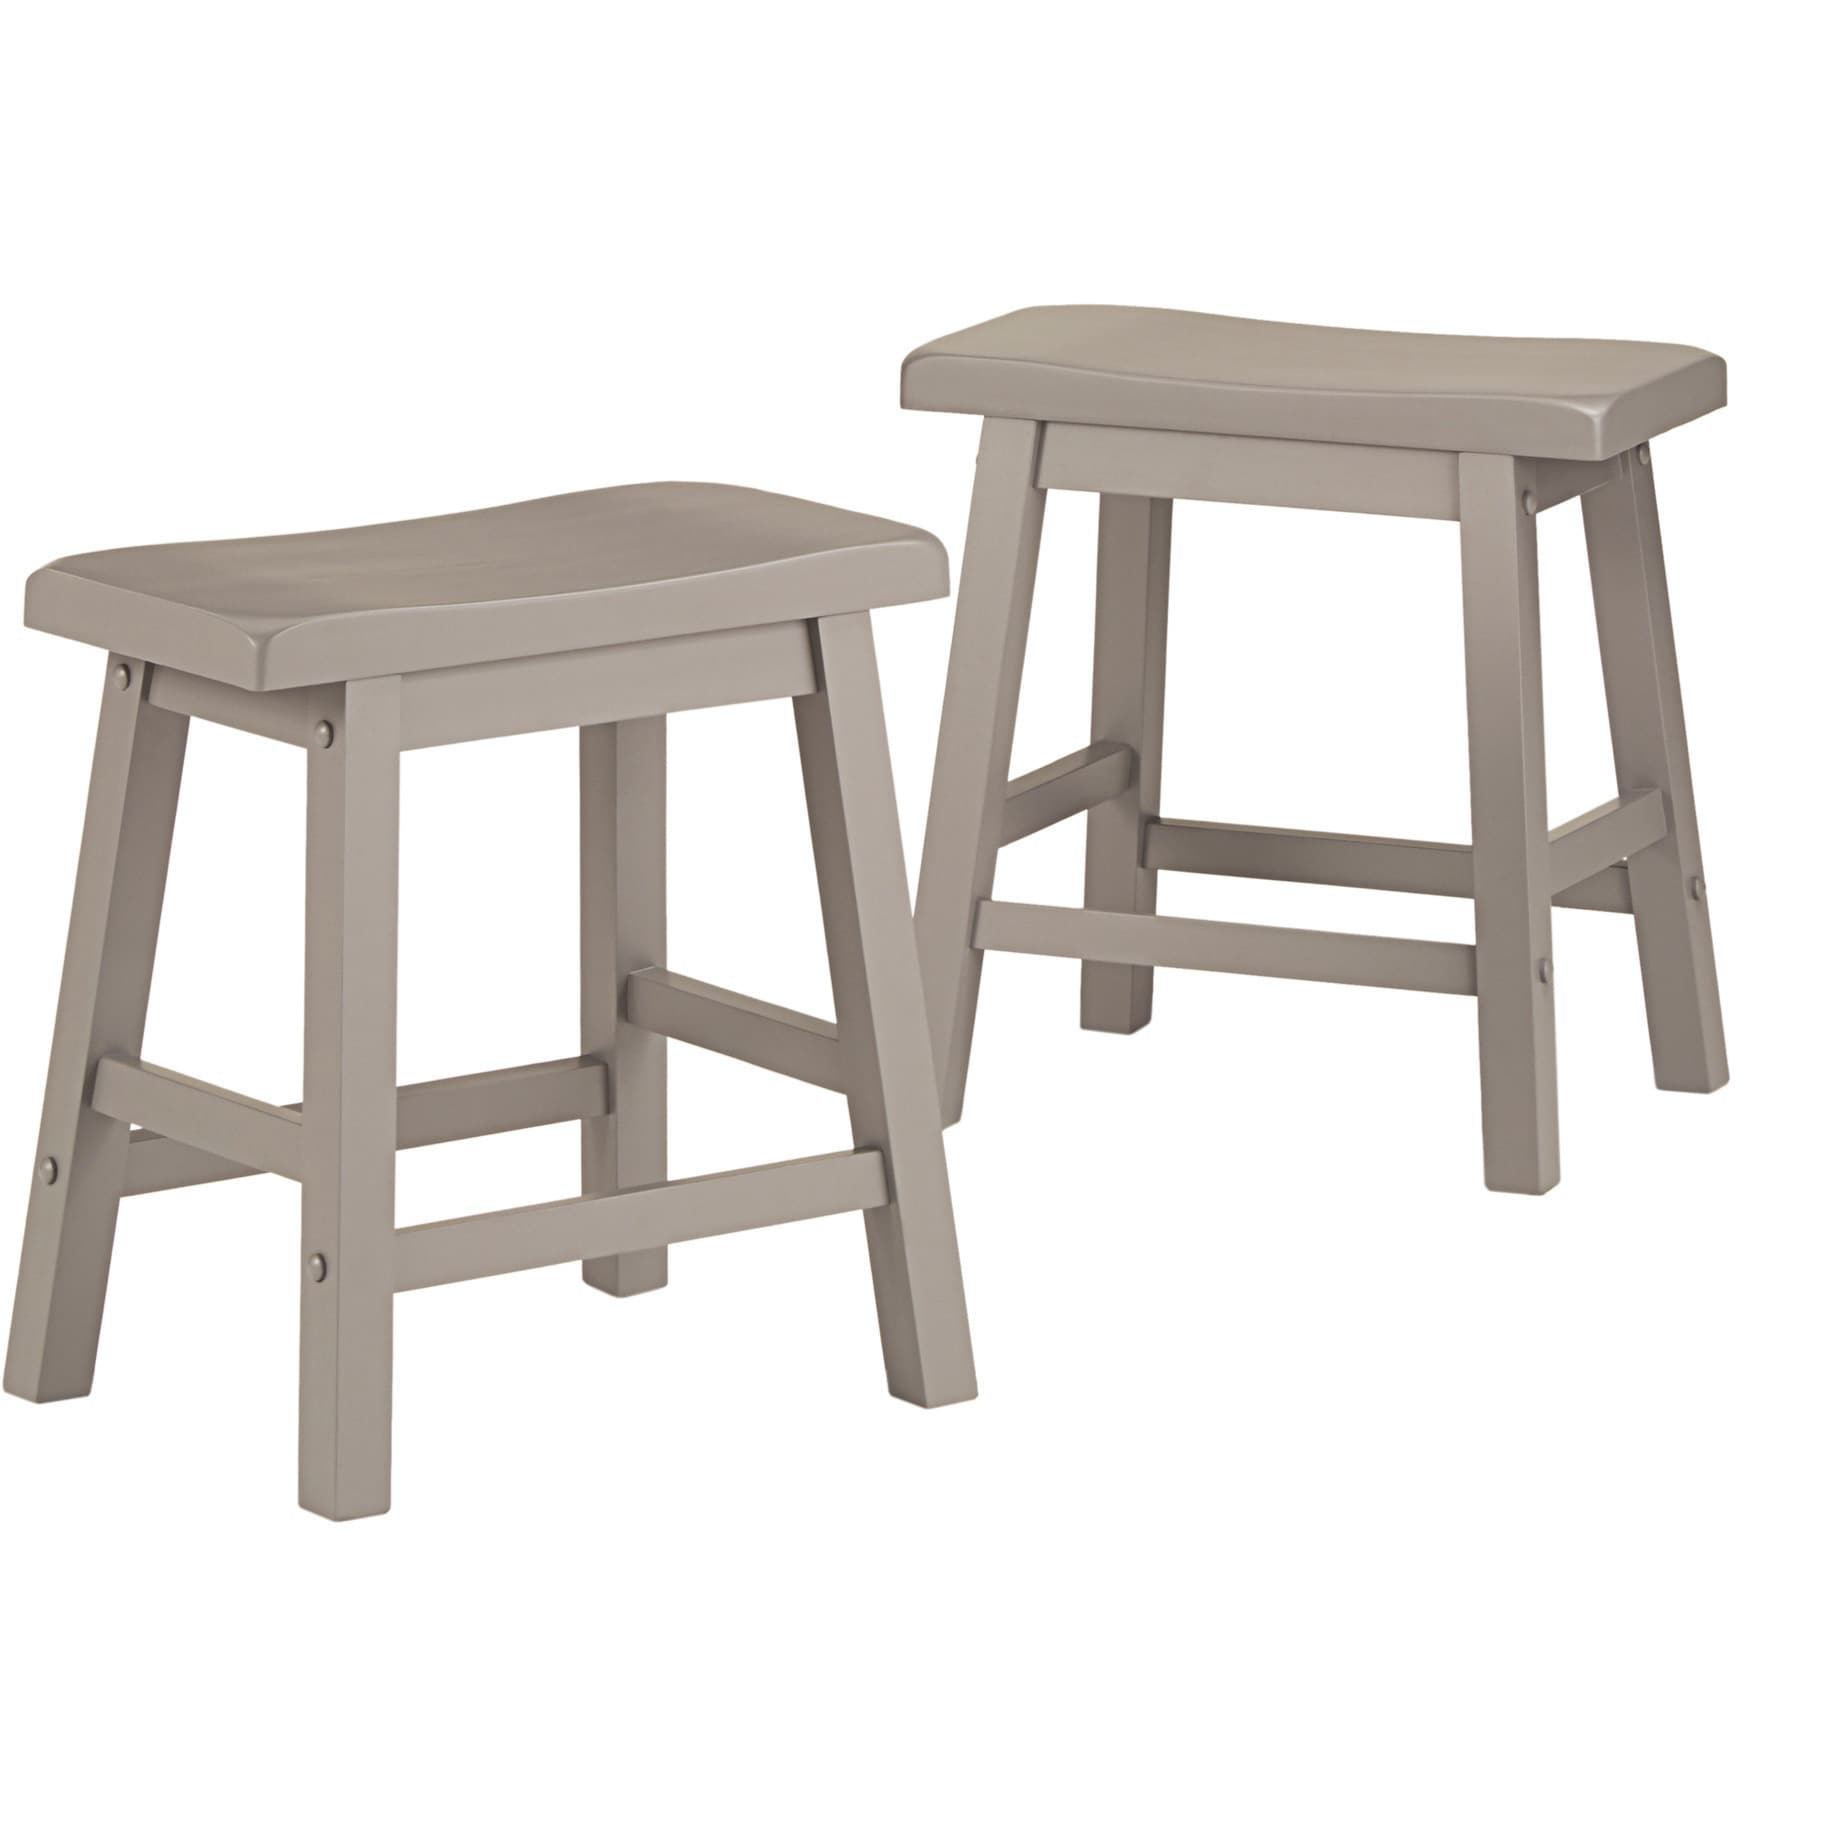 Salvador Saddle Back 18-inch Backless Stool (Set of 2) by iNSPIRE Q Bold -  Free Shipping Today - Overstock.com - 12960332